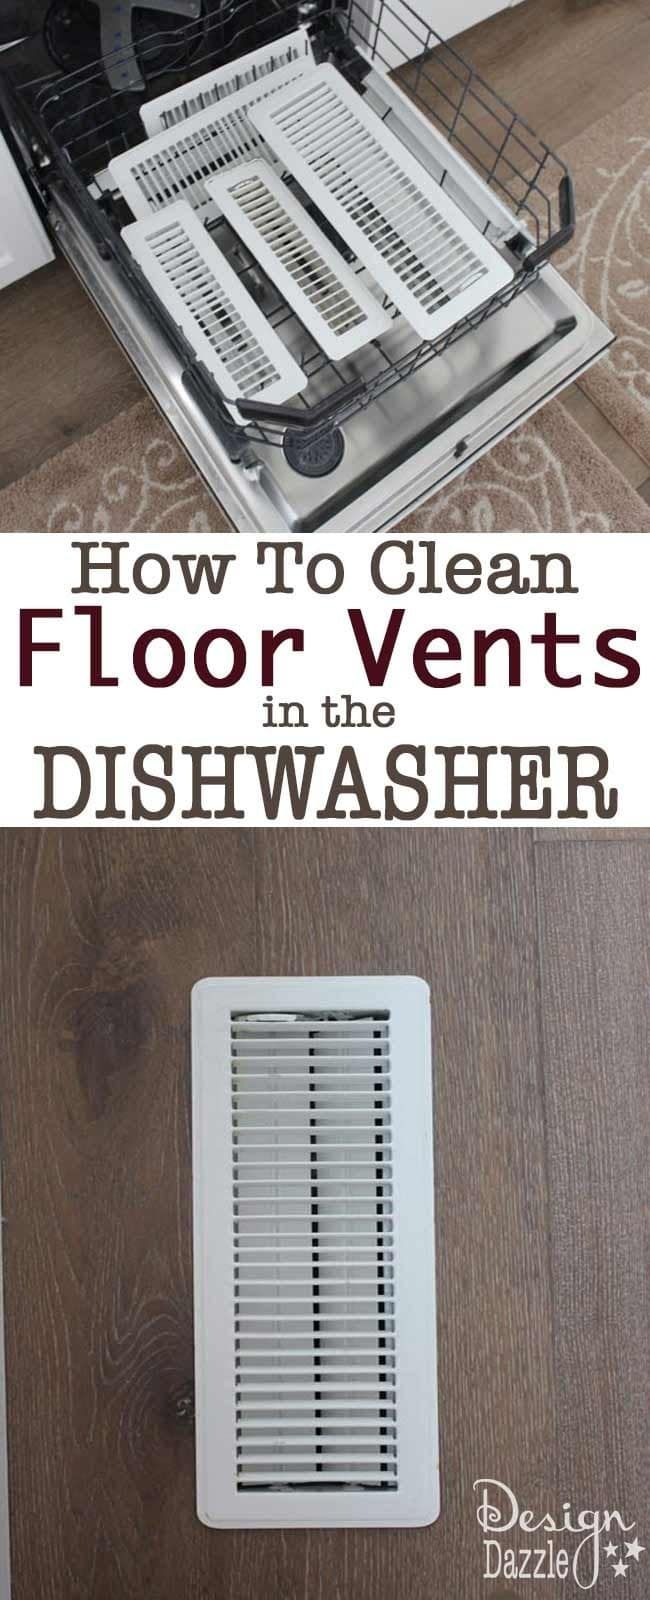 This will work for the vent cover for your bathroom fan, too; just make sure not to run the heat dry cycle if any of the vents are plastic. Read more about how to make this work well here.